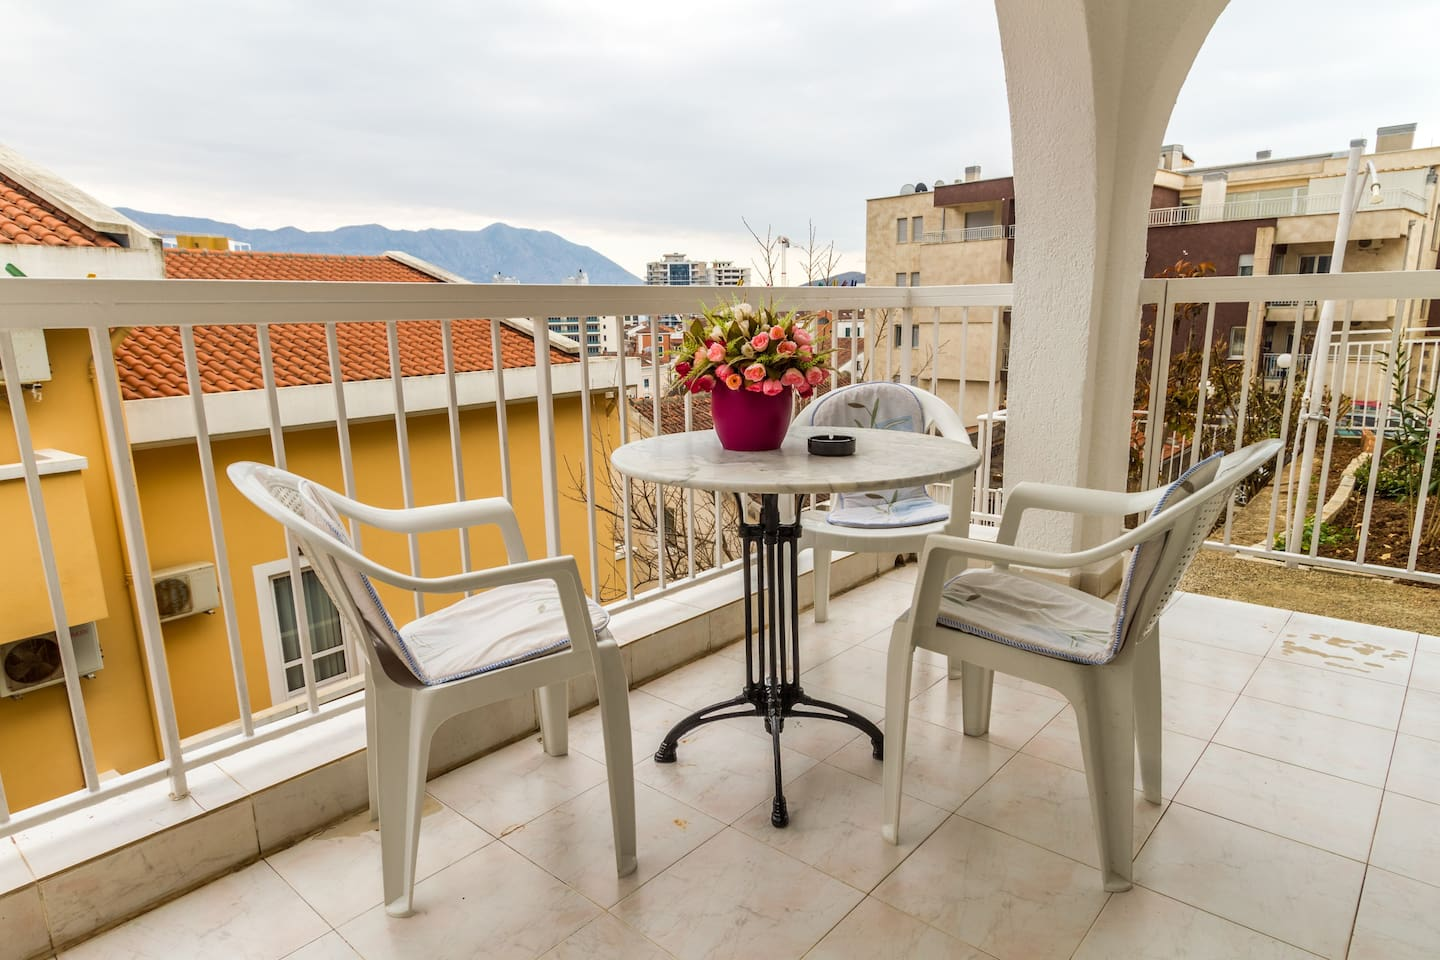 Our house offers a beautiful rich garden where you can enjoy your summer days in peace and quiet and beauty. You will love the terrace which offers the full panoramic view of the city and the sea while being only minutes away from the Old Town.